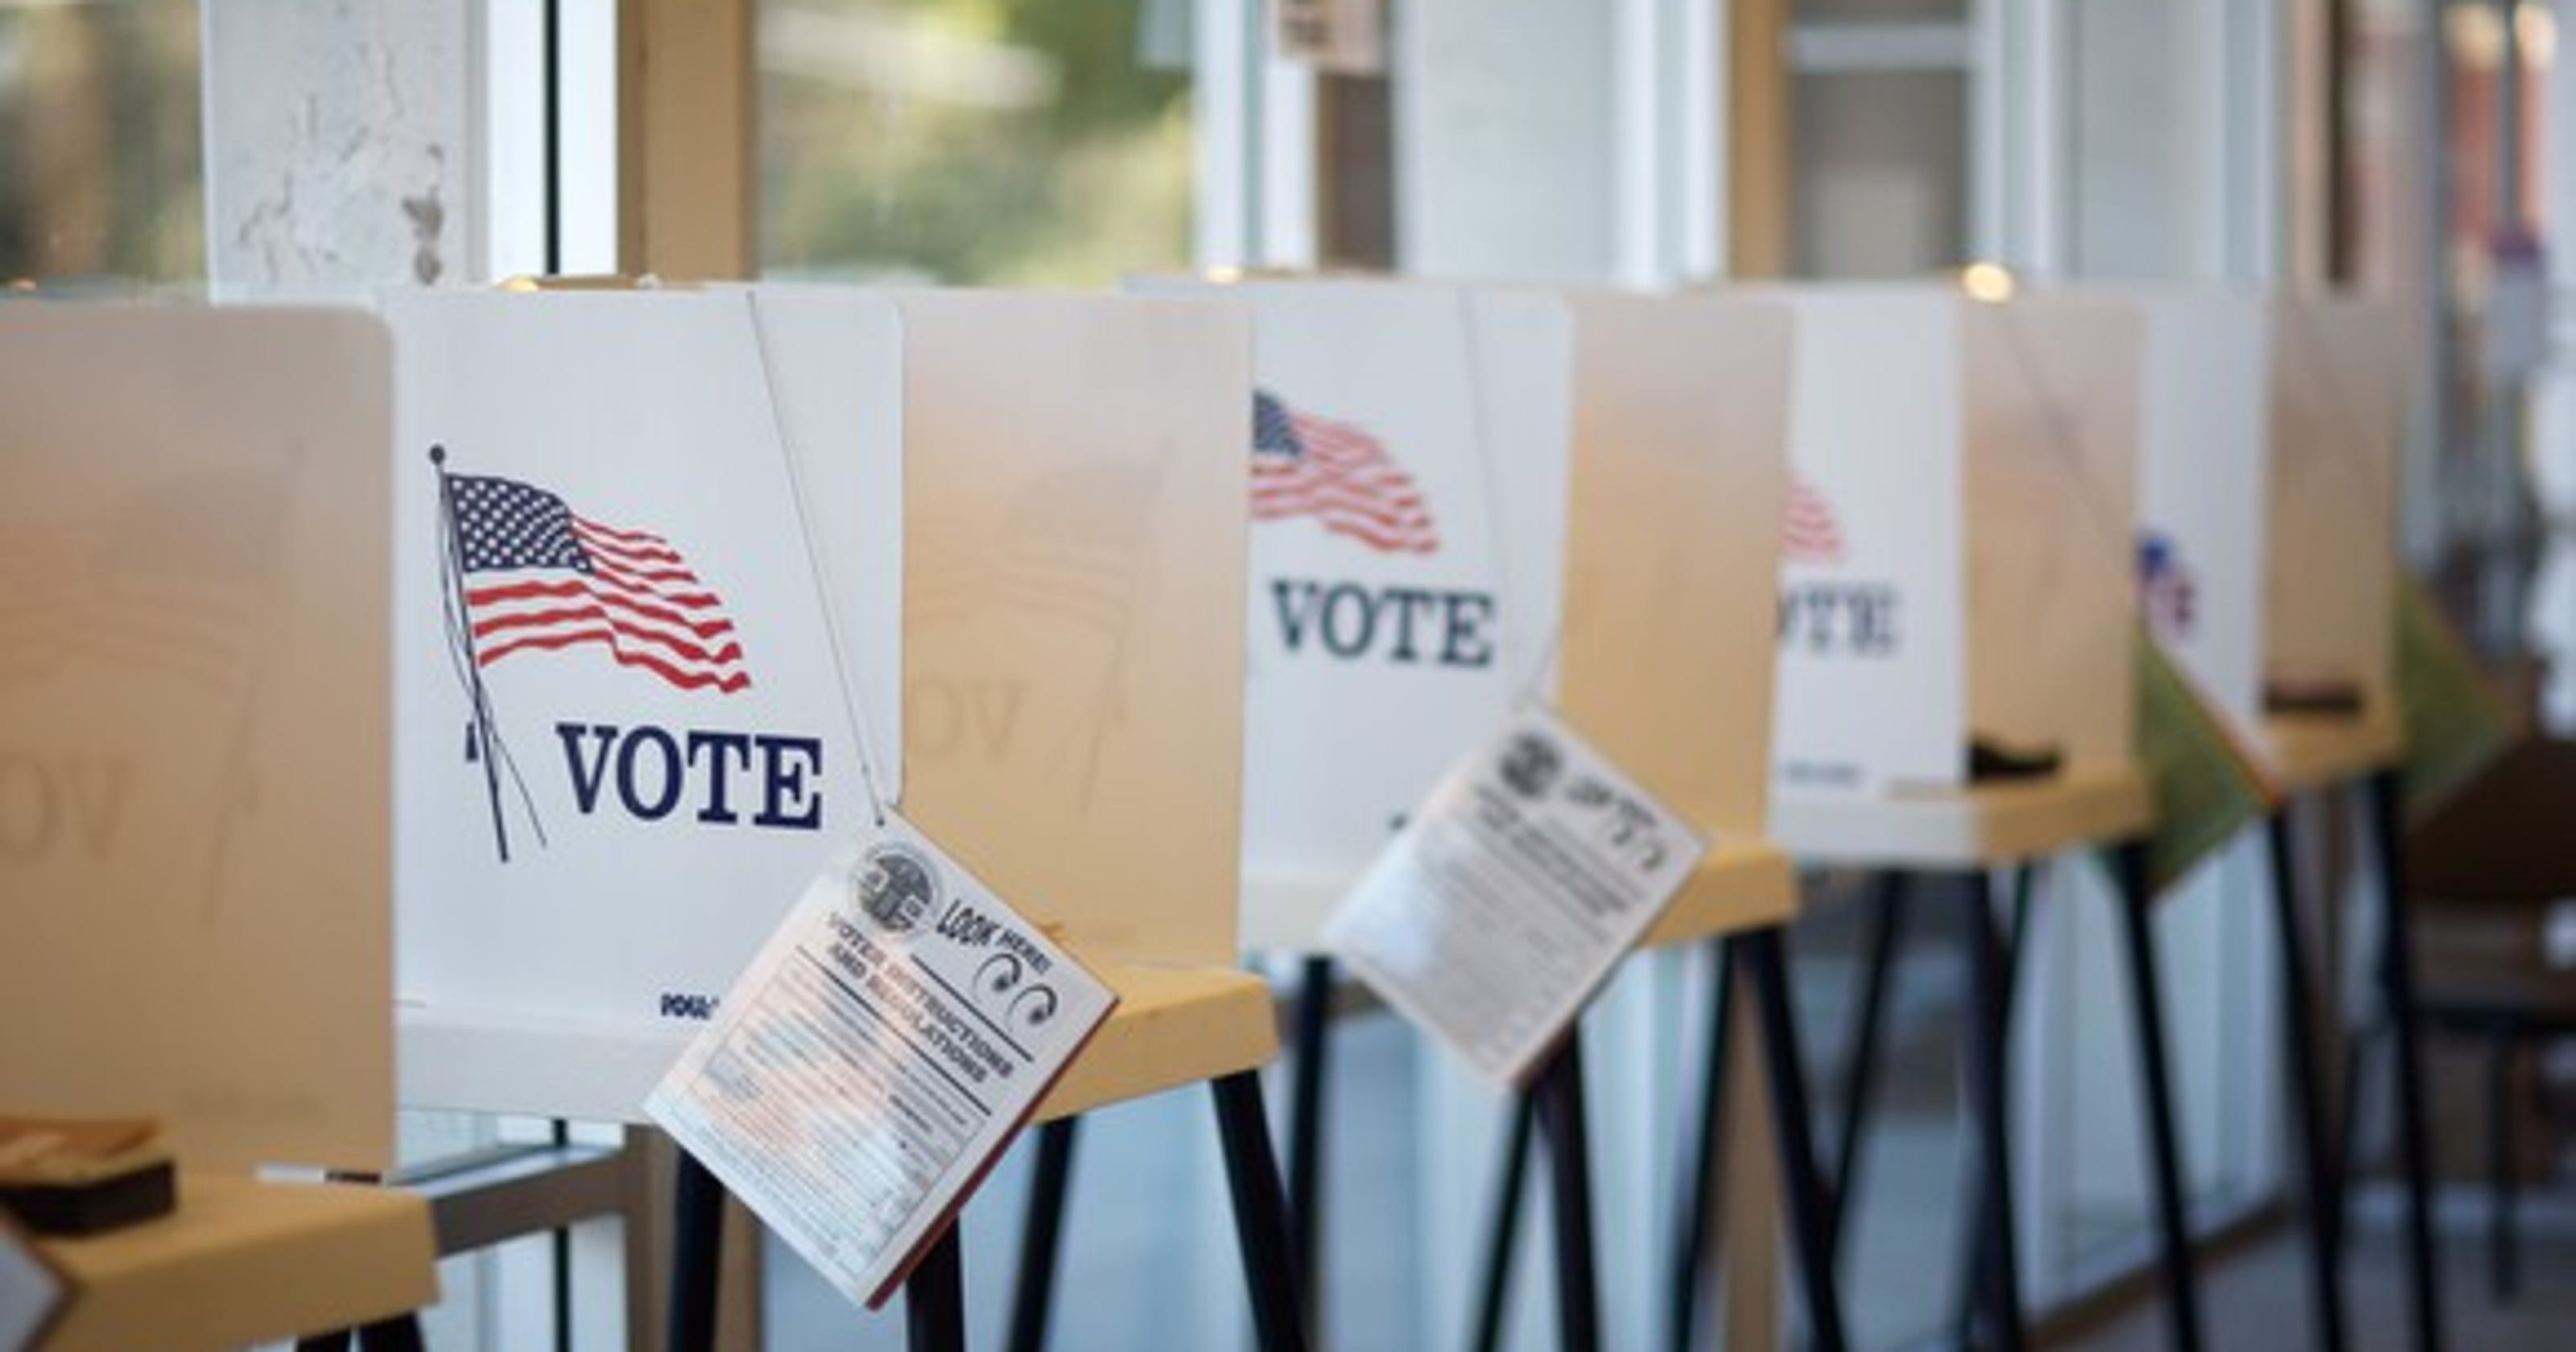 Midterm elections: What did the just-completed primaries tell us?